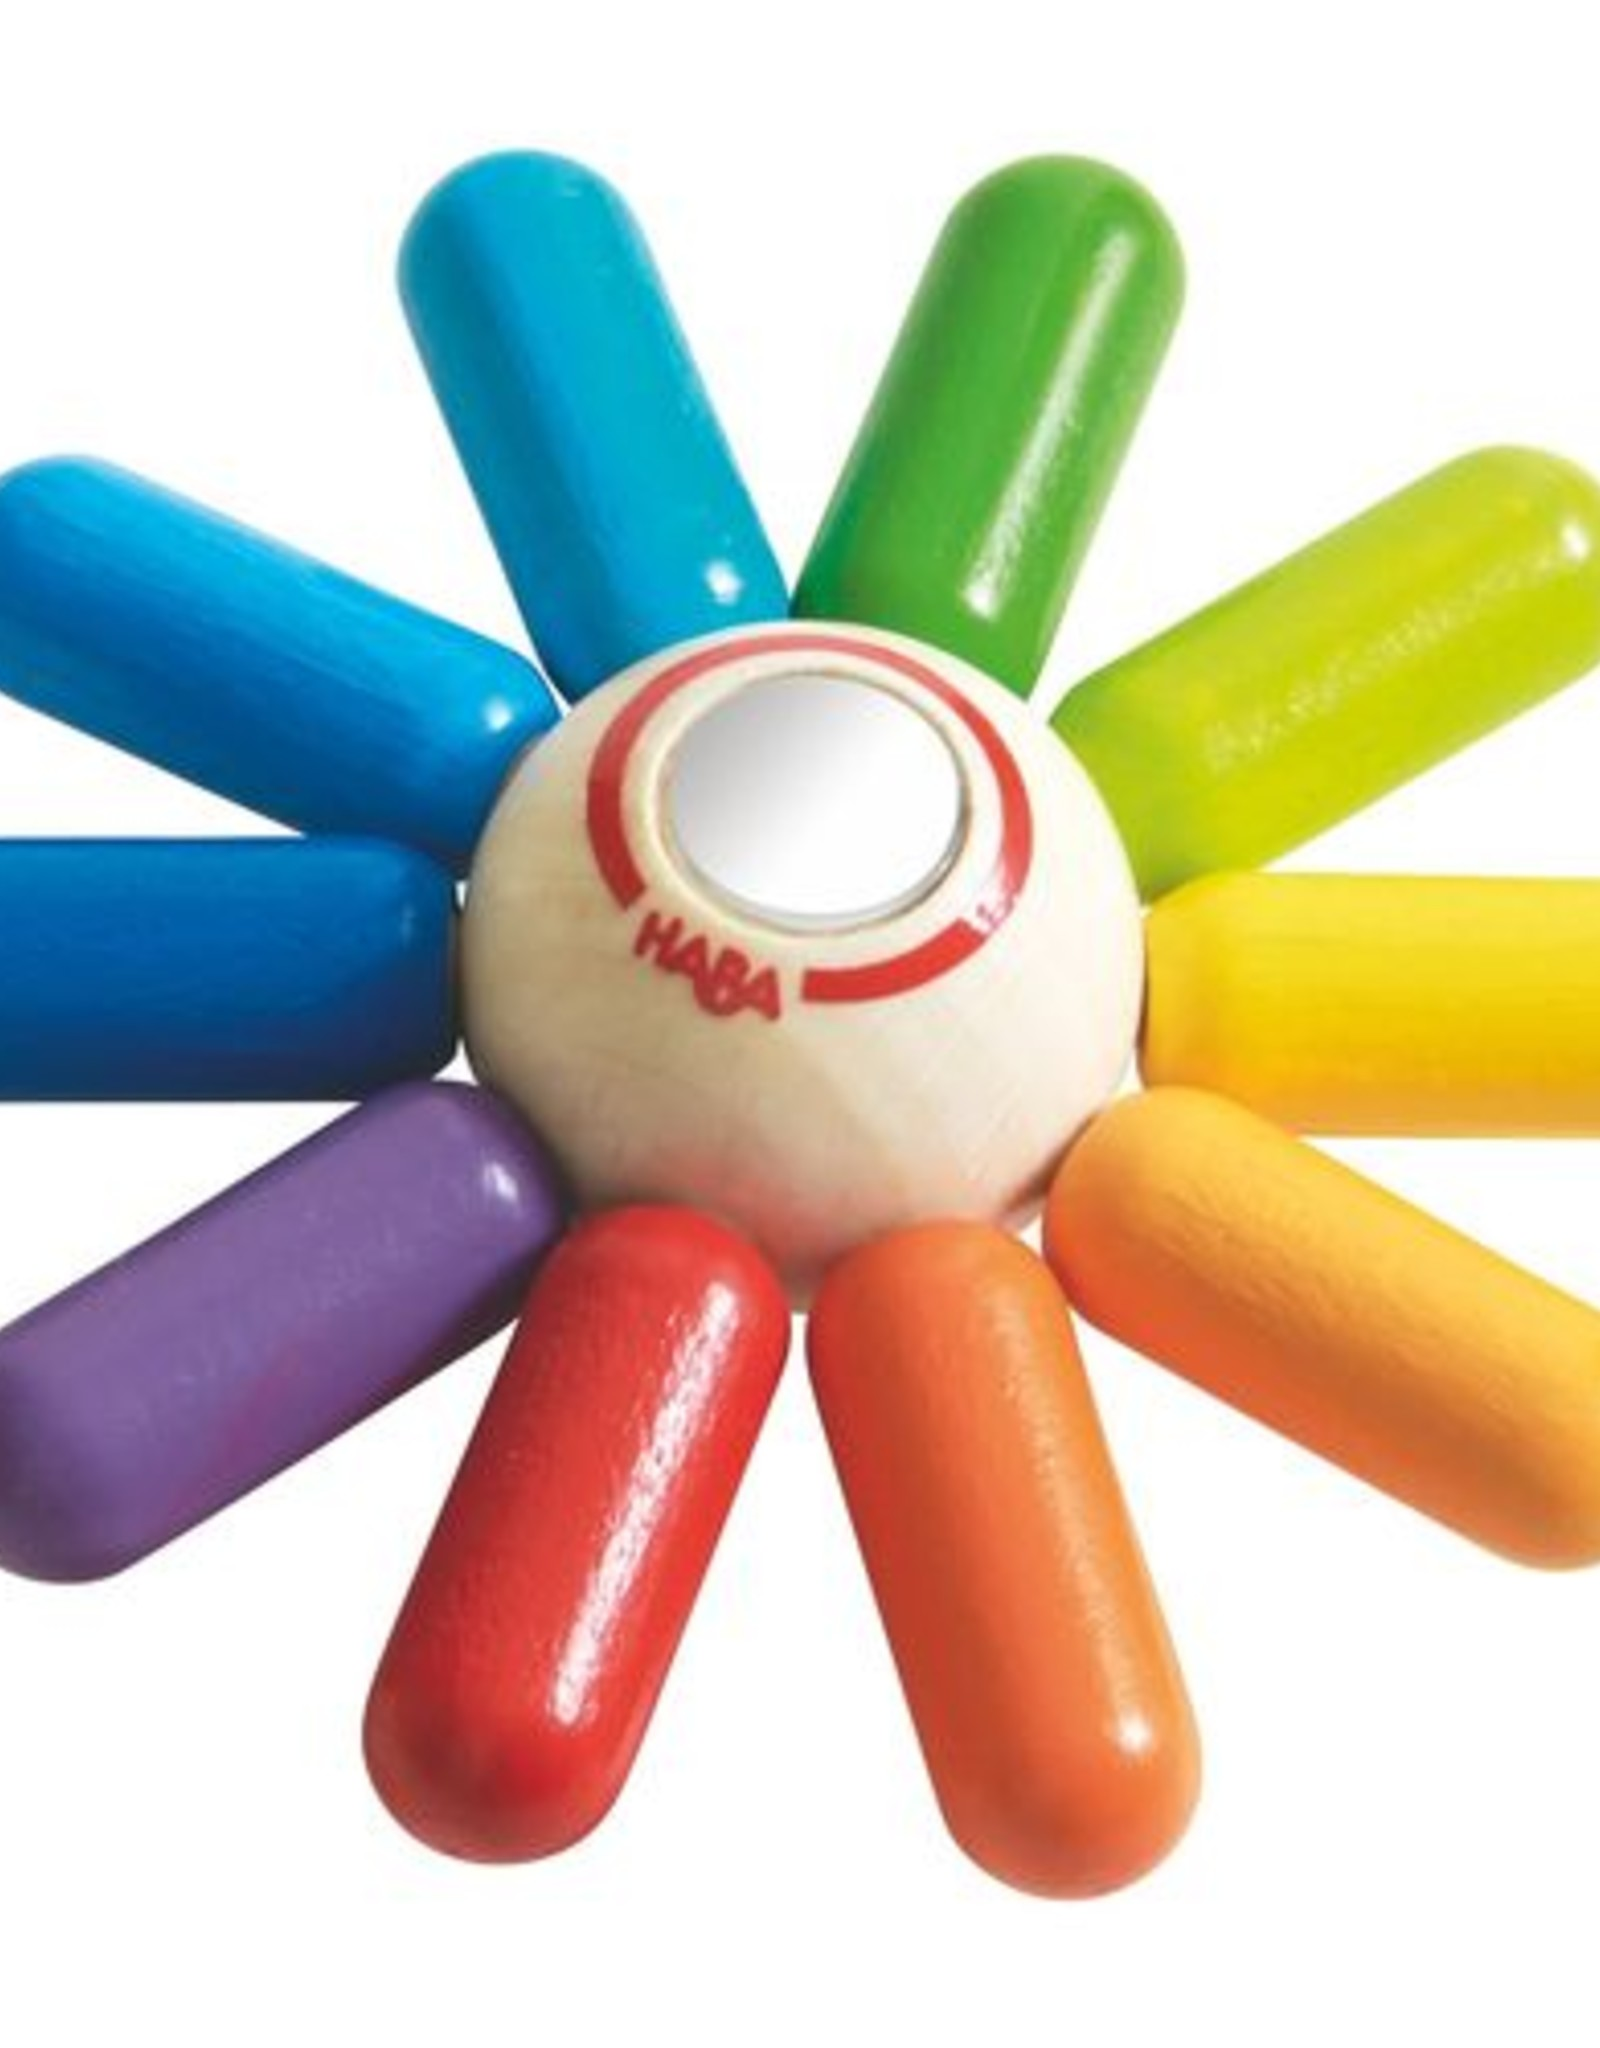 Haba rainbow sun clutching toy